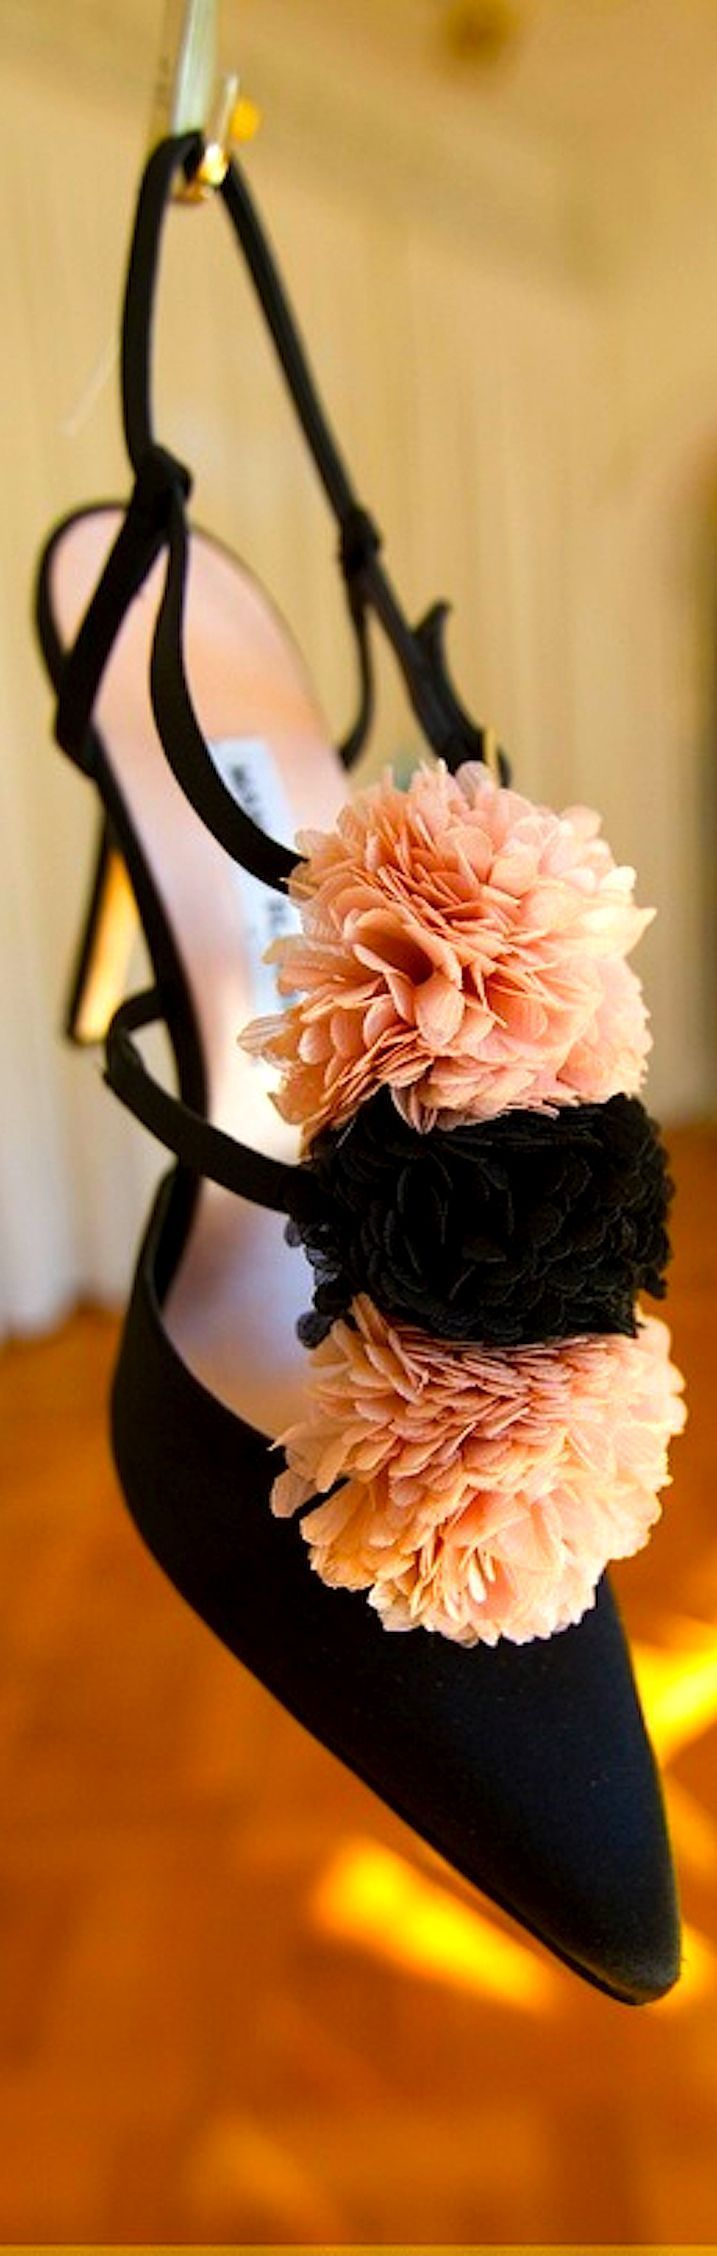 Manolo Blahnik black slingback pumps with peach and black flowers #shoes #fashion #accessories #manoloblahnikcarrie #manoloblahnikheels2017 #manoloblahnik2017